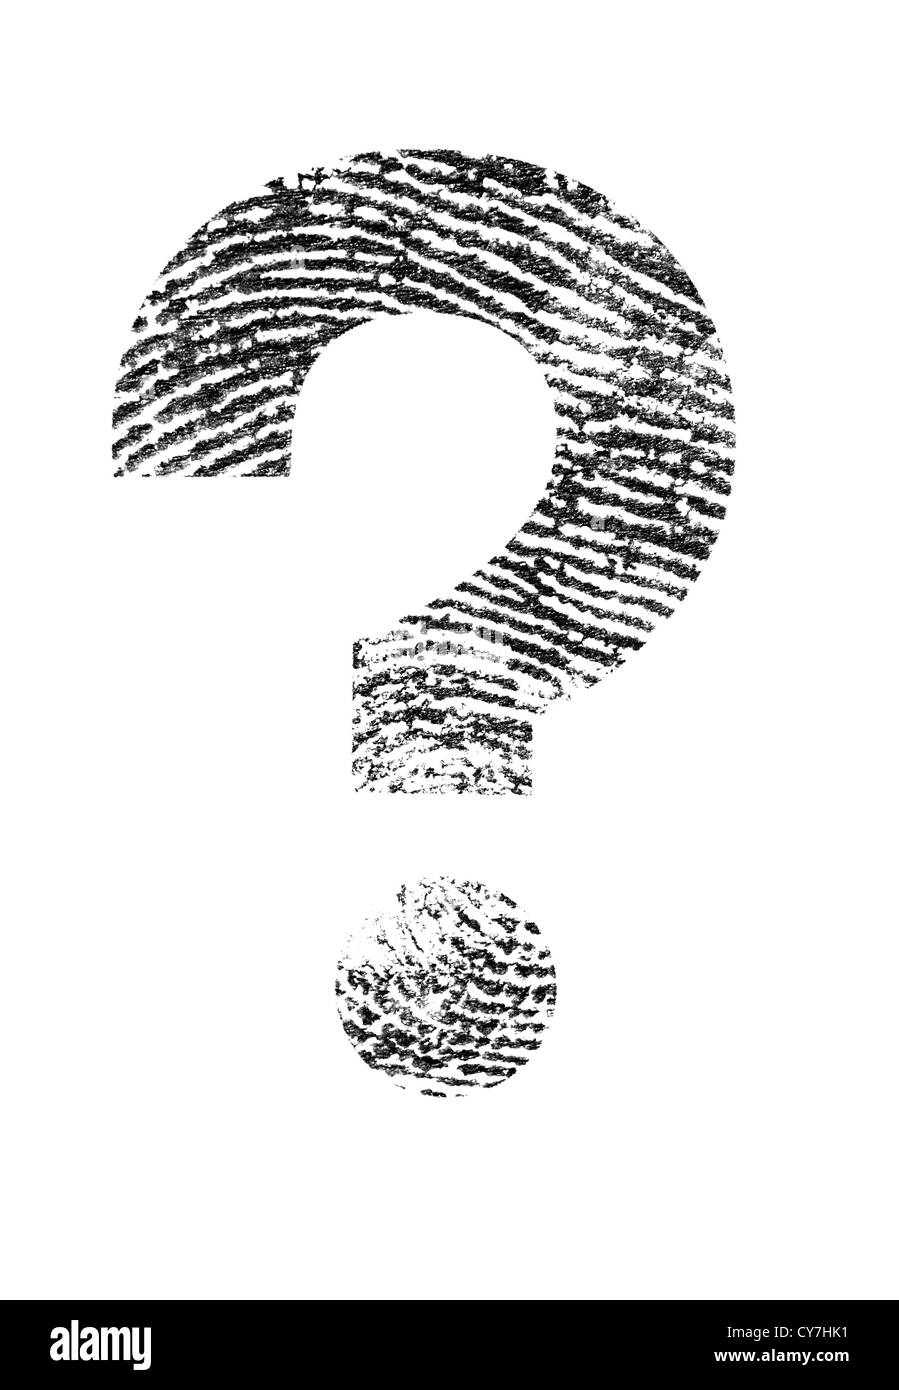 A Question mark made of a real fingerprint. Stock Photo